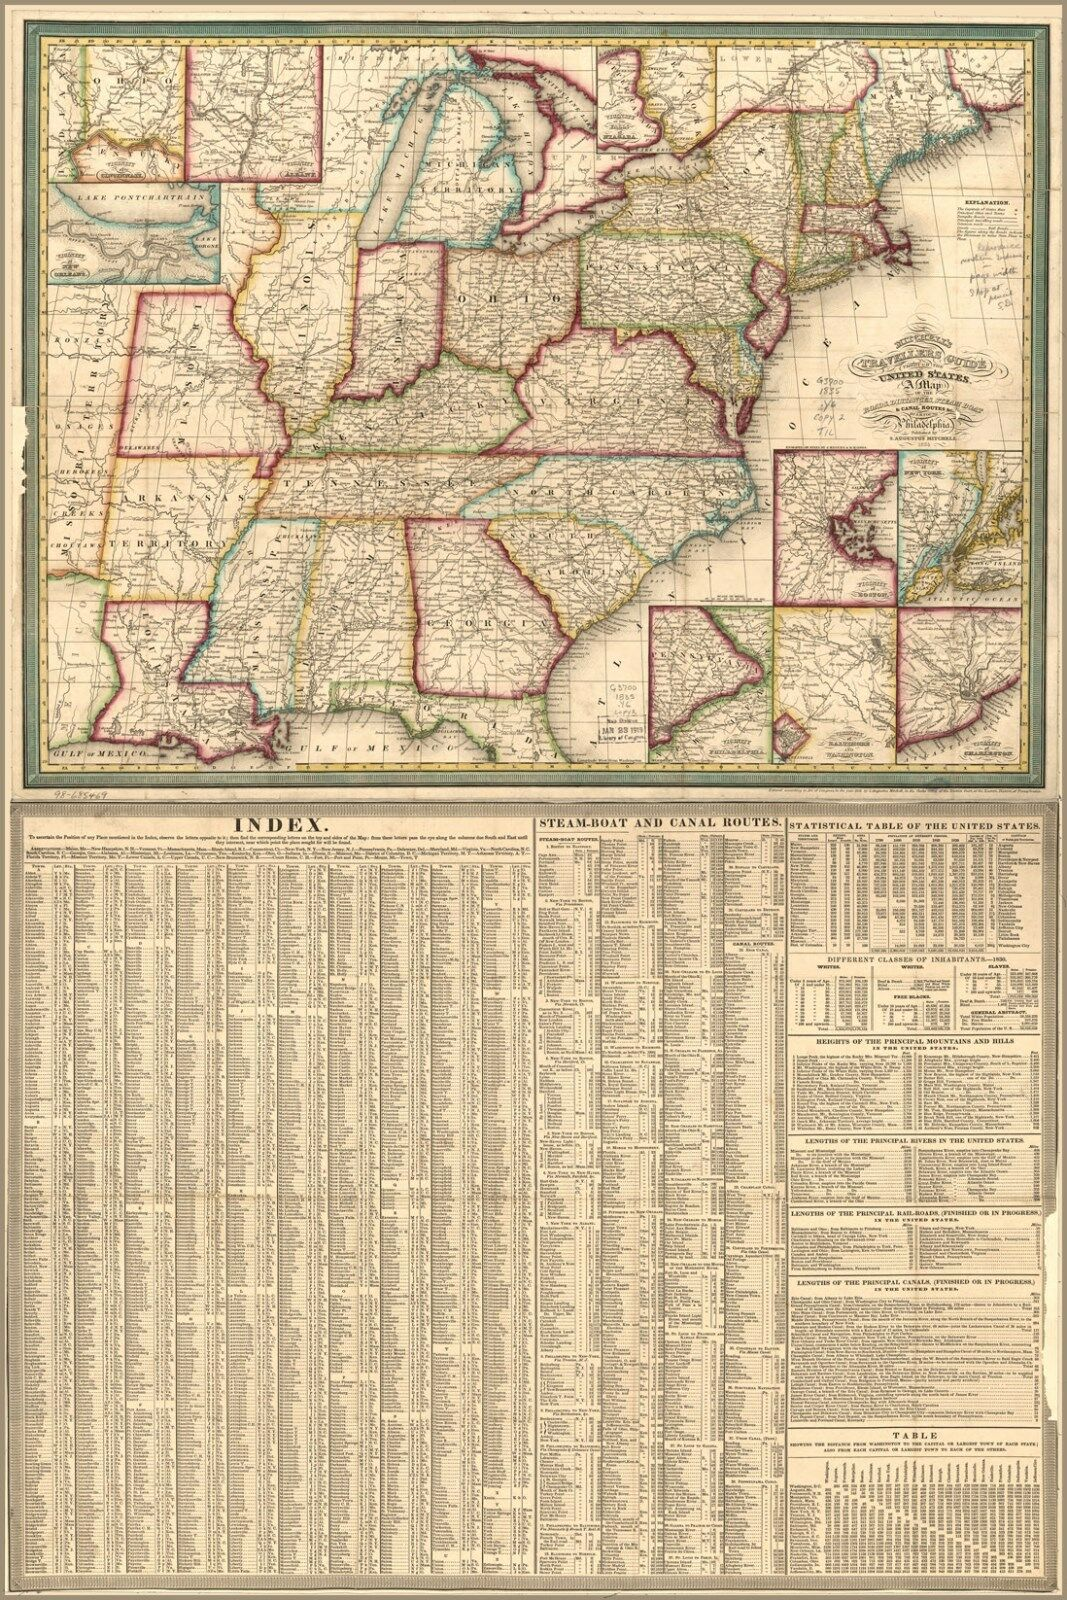 Poster, Many Größes; Travellers Guide Map United States 1835